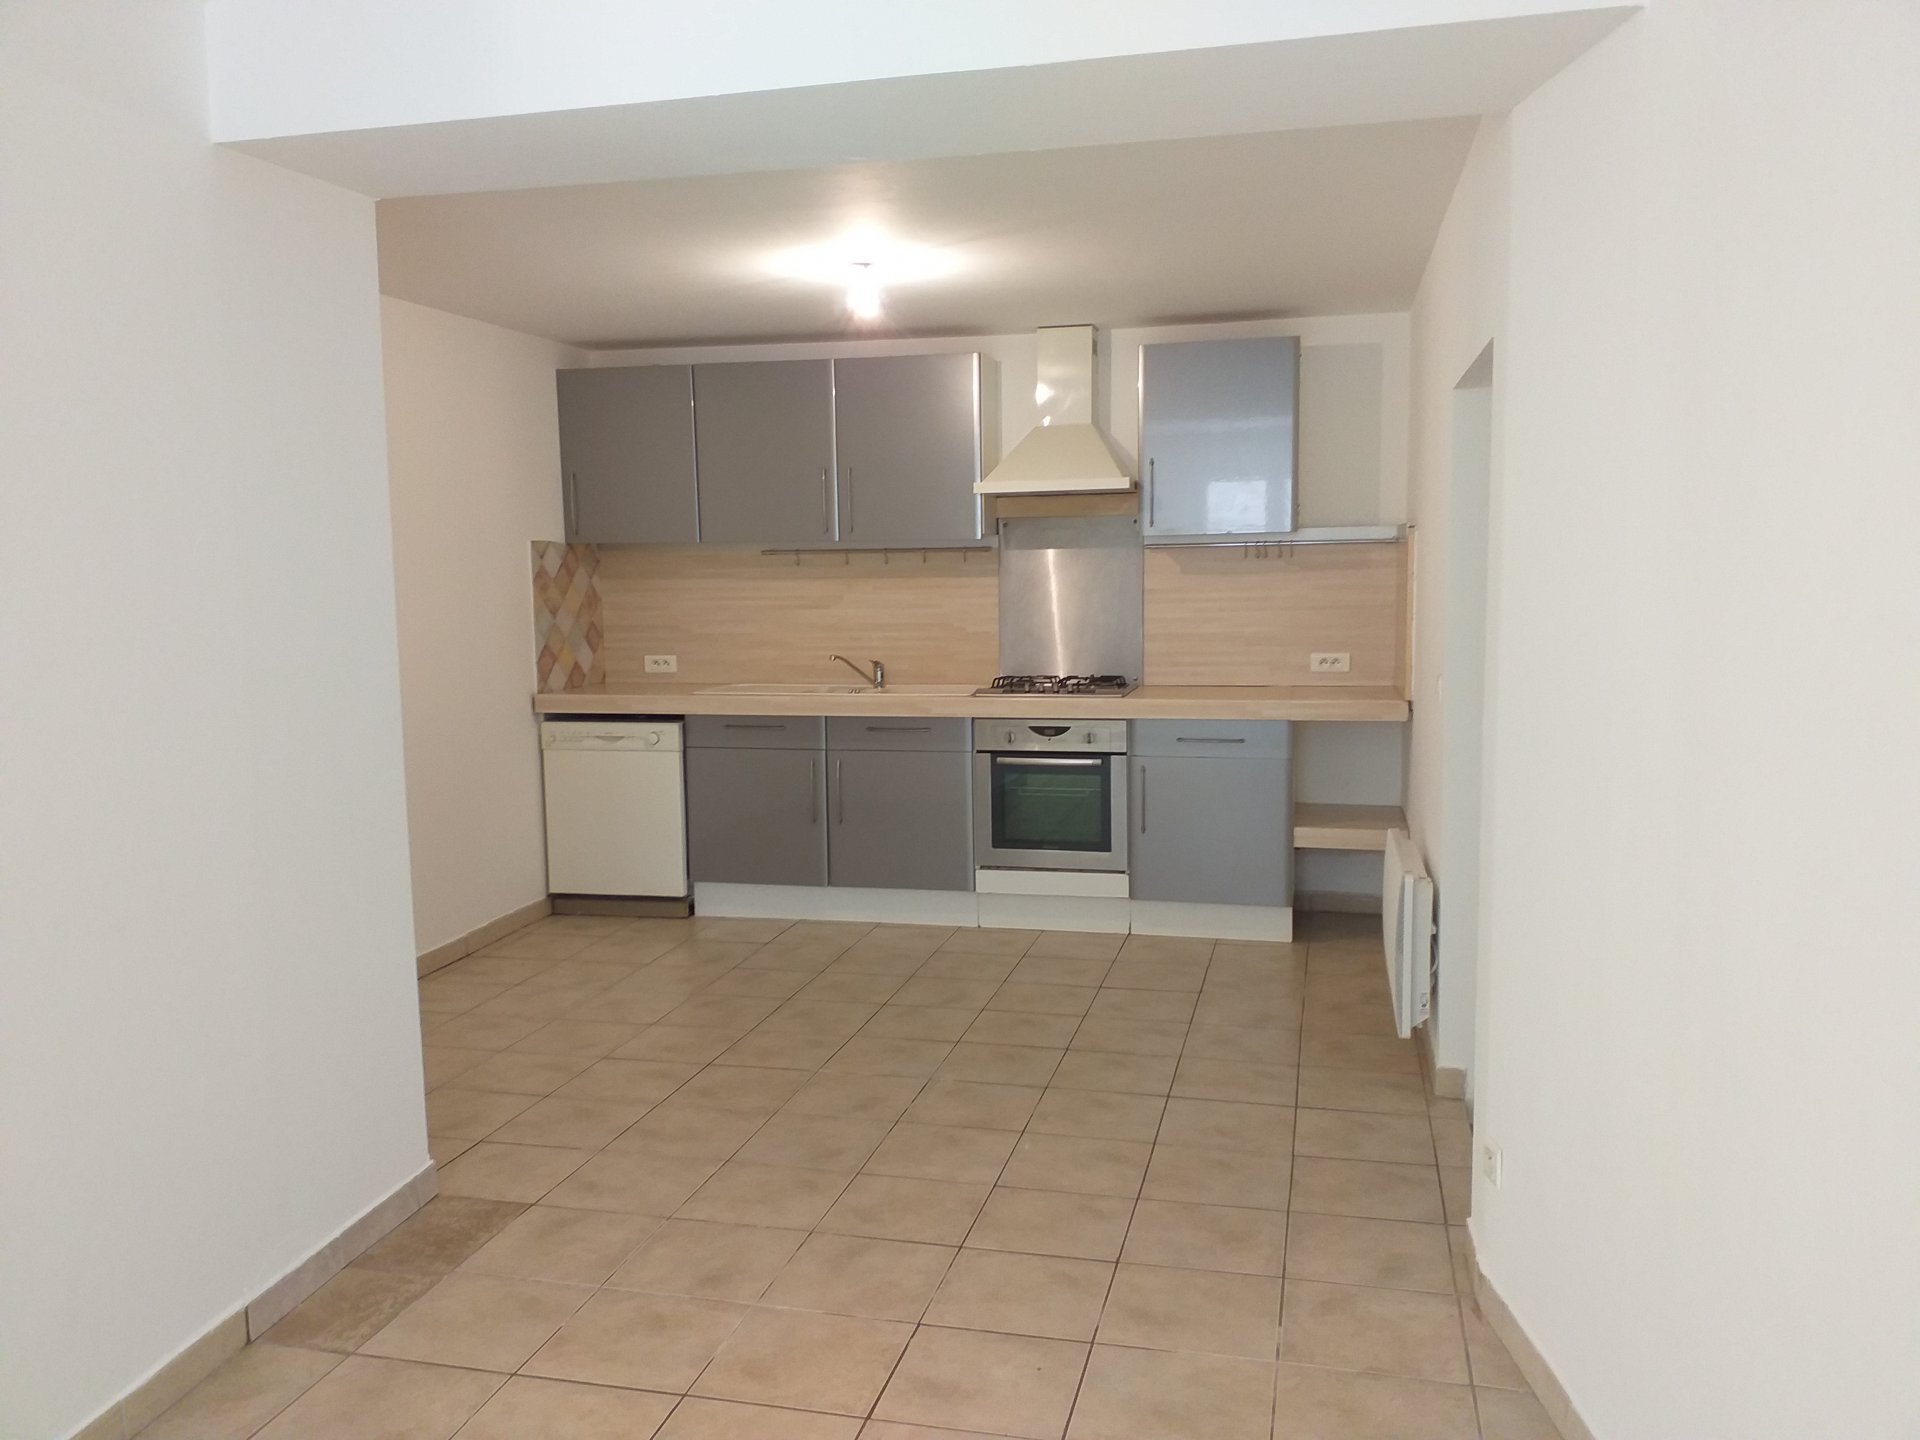 MAILLANEEn village center, village house type 3 consists of a kitchen, a living / dining room with .